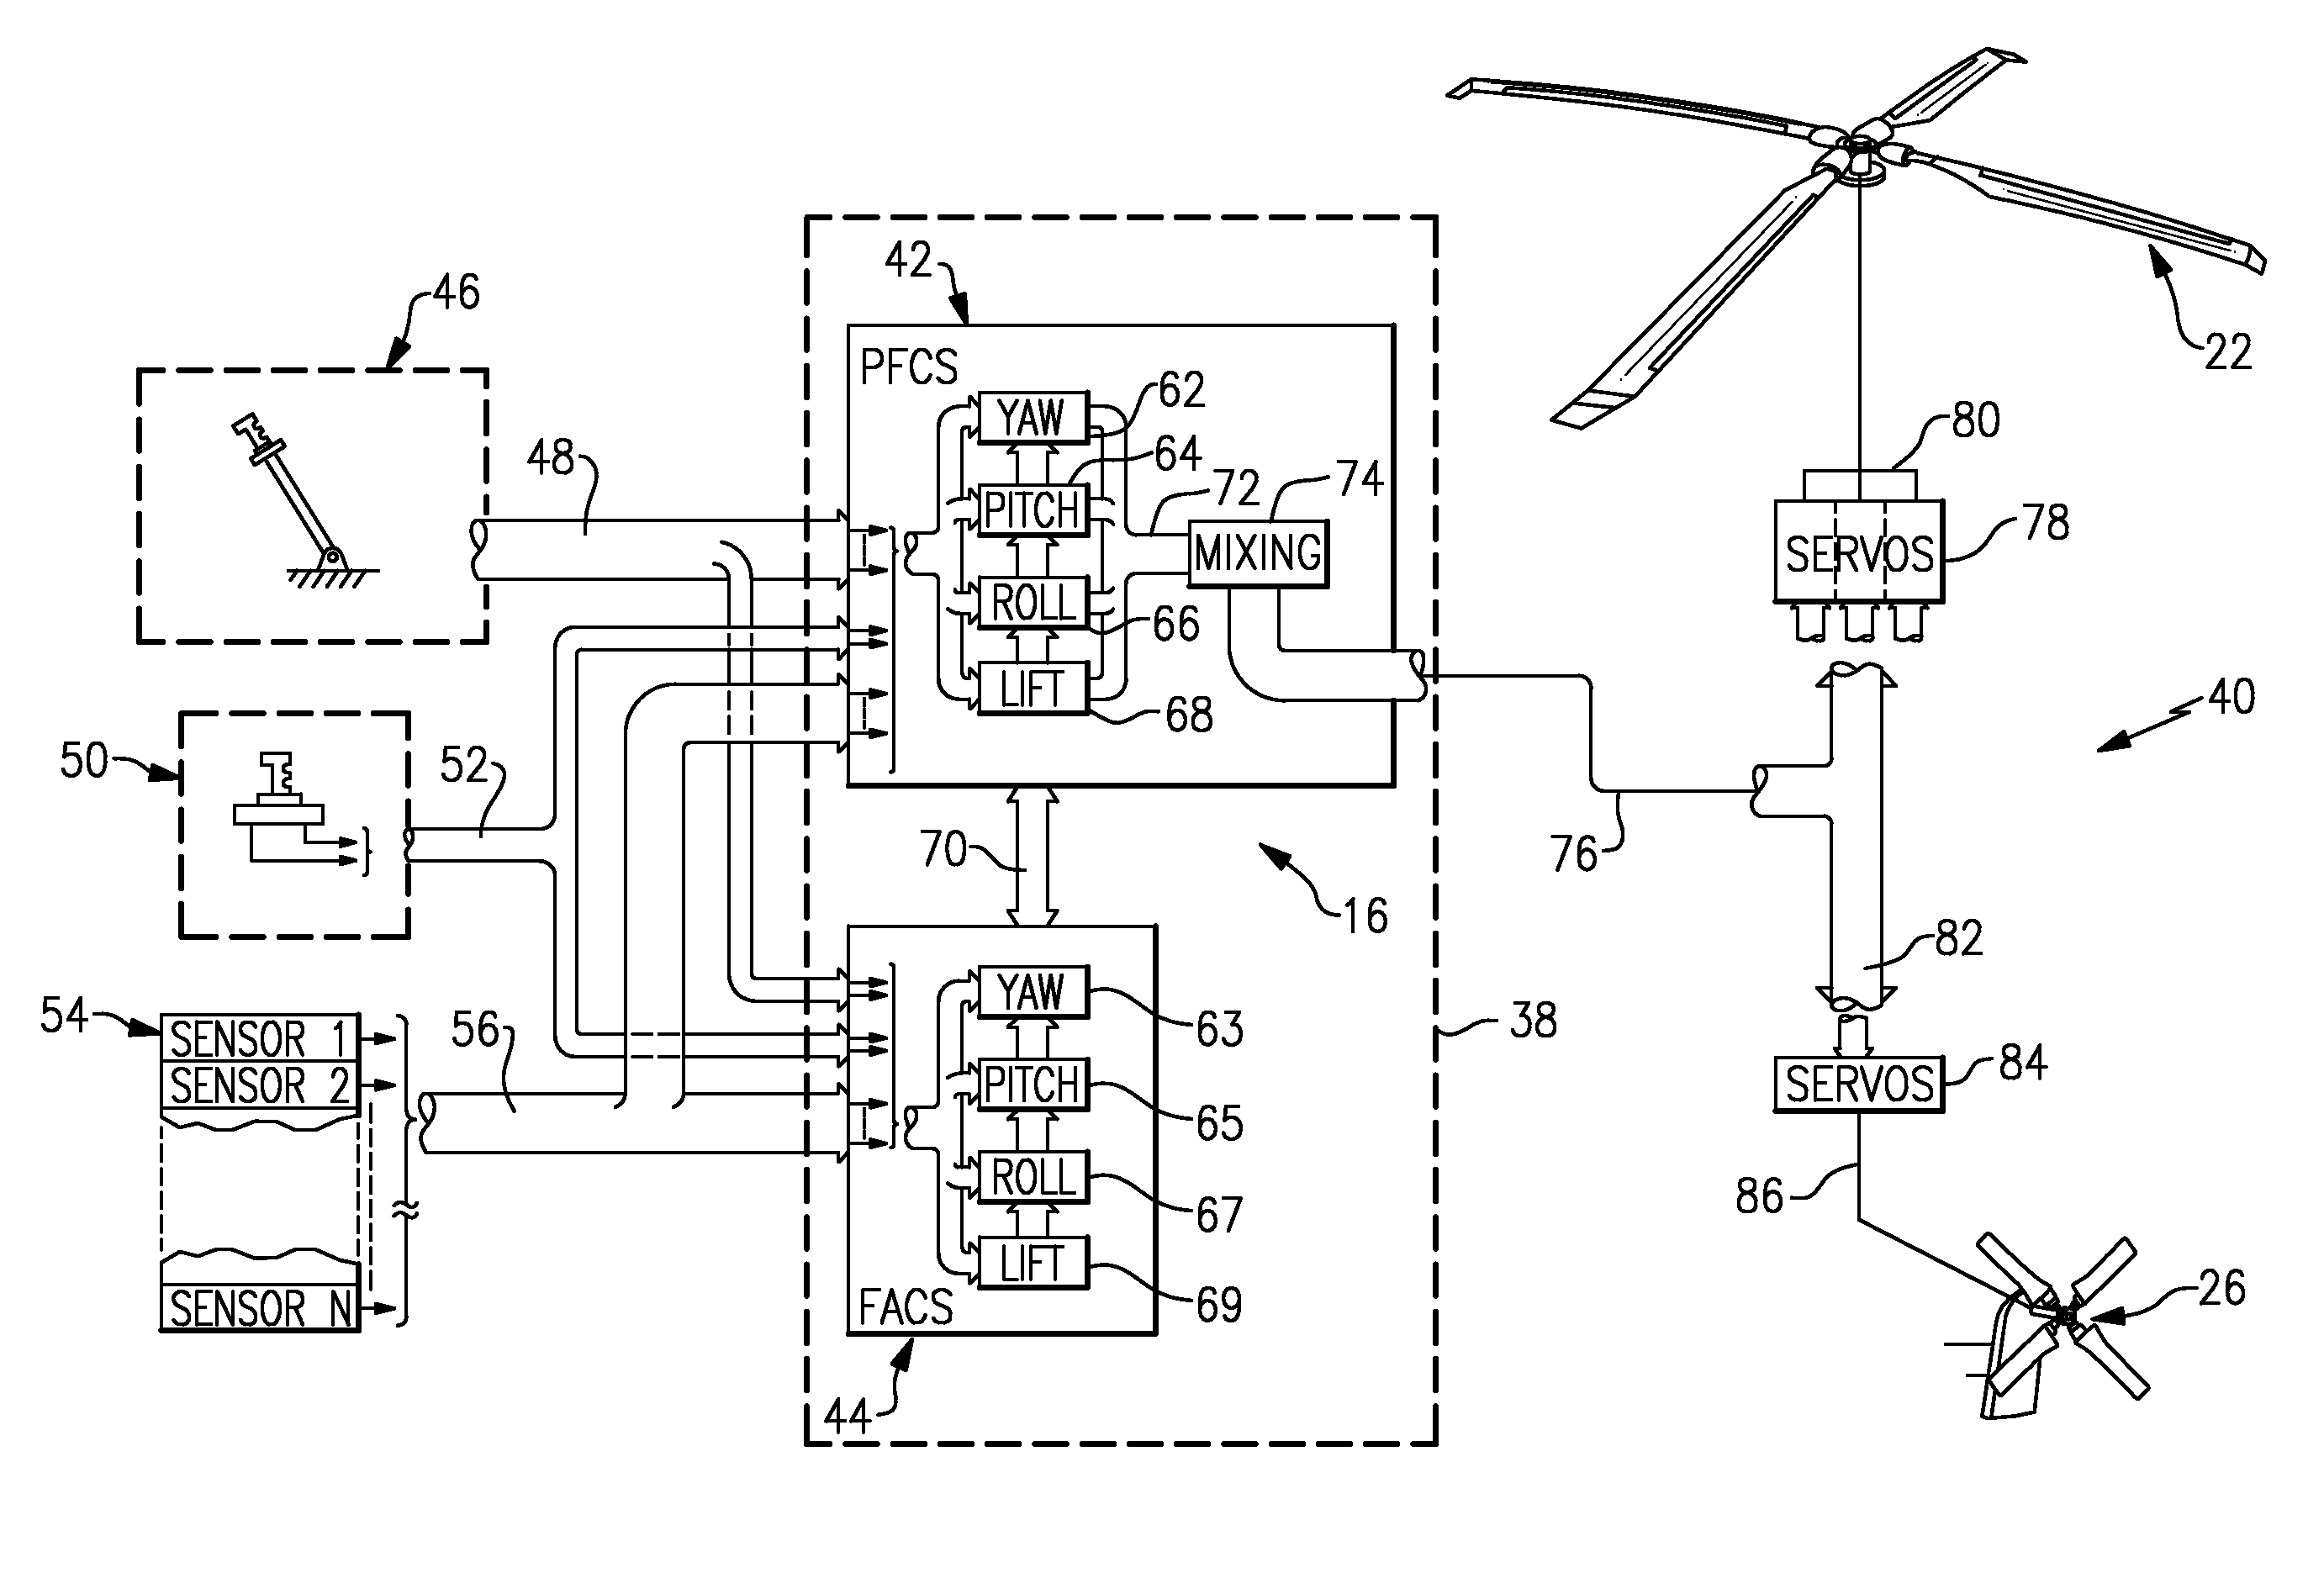 Aircraft Control Block Diagram Of Engine H2 Wiring-diagram